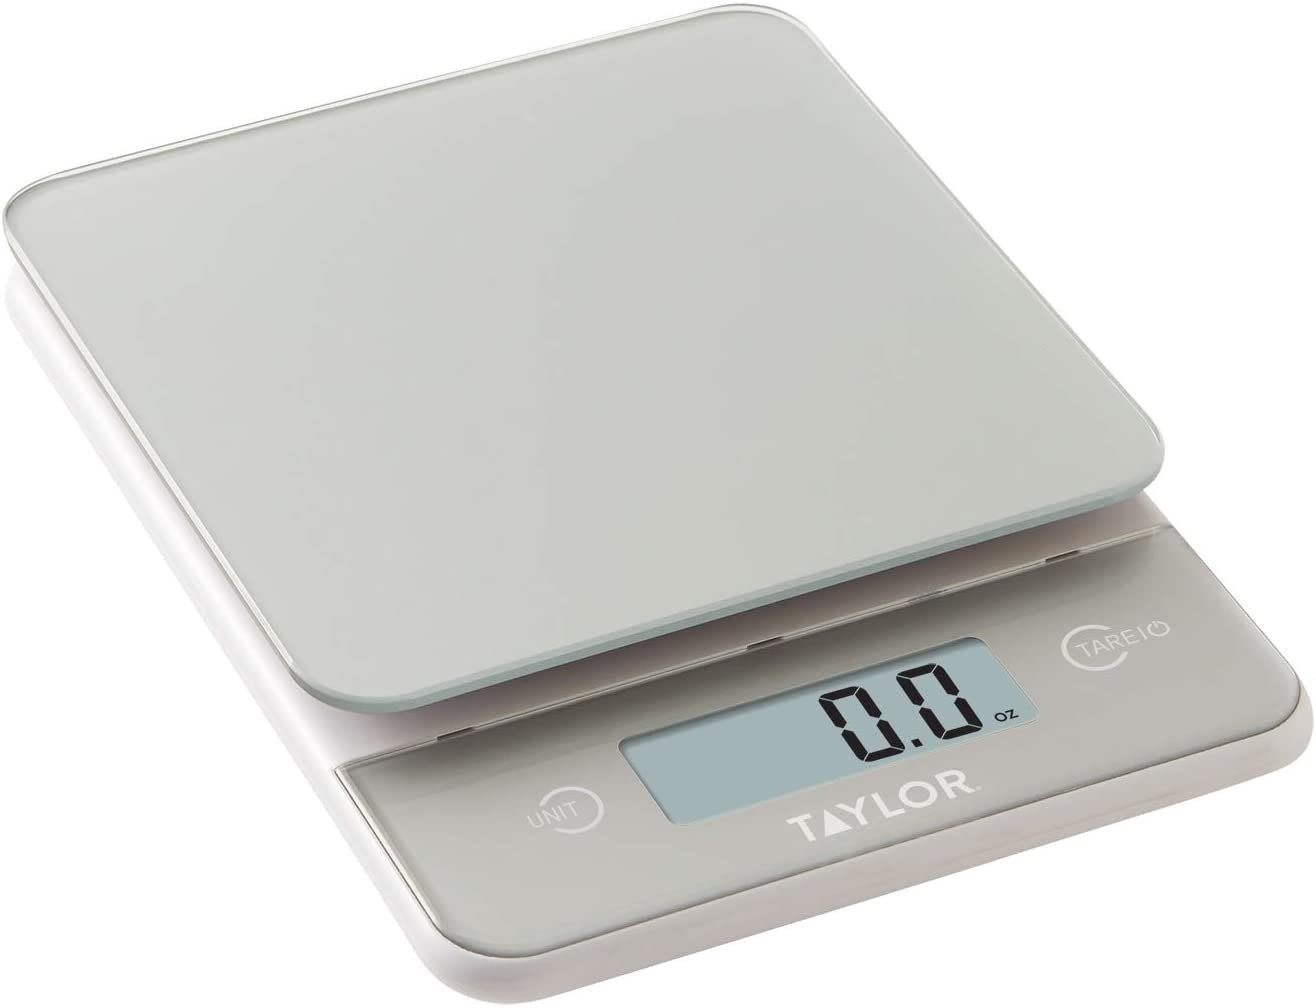 Taylor Precision Products 11lb Digital Glass Top Household Kitchen Scale